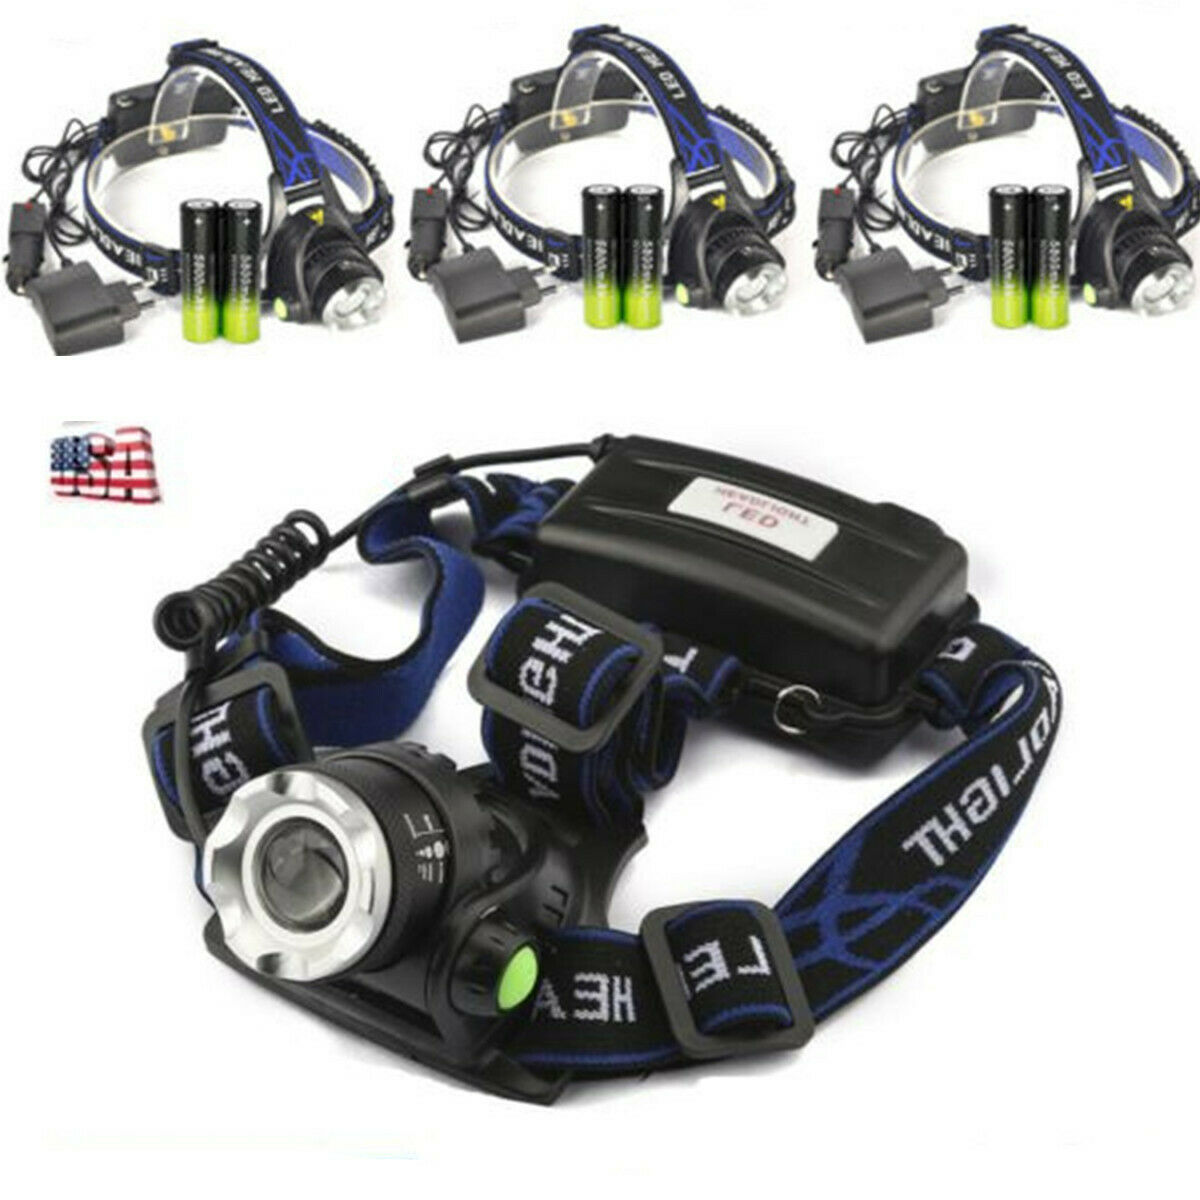 3Set Zoomable 90000LM Headlamp T6 LED Headlight Flashlight+Charger+18650 Battery